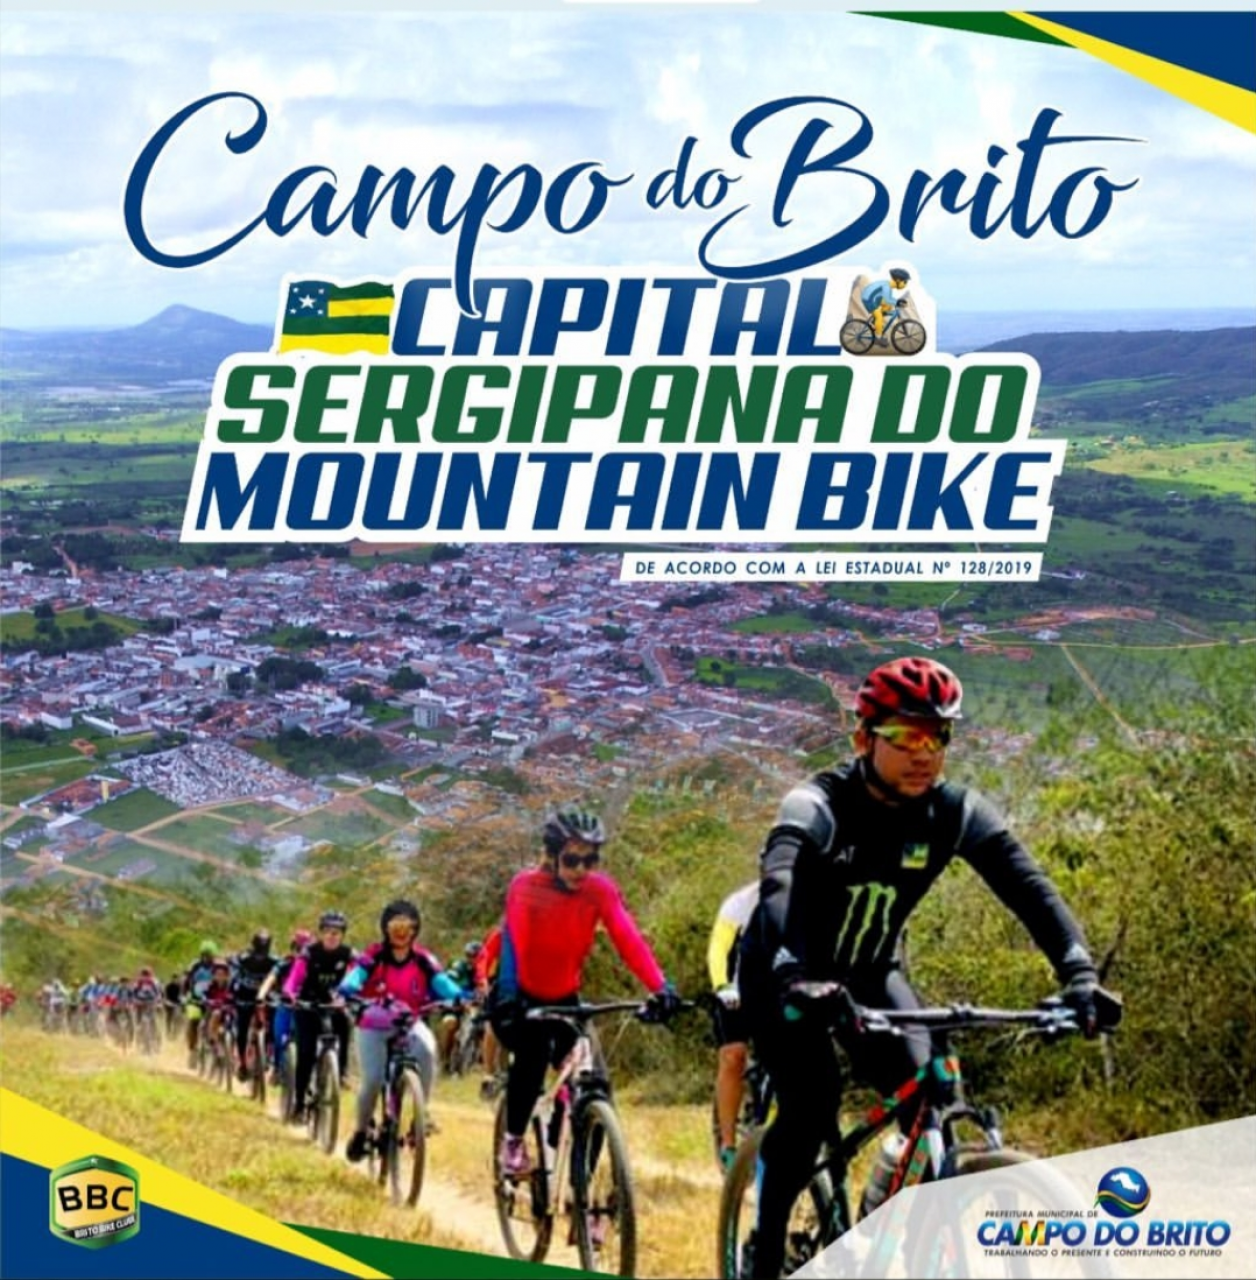 Campo do Brito Recebeu o Título de Capital Sergipana do Mountain Bike